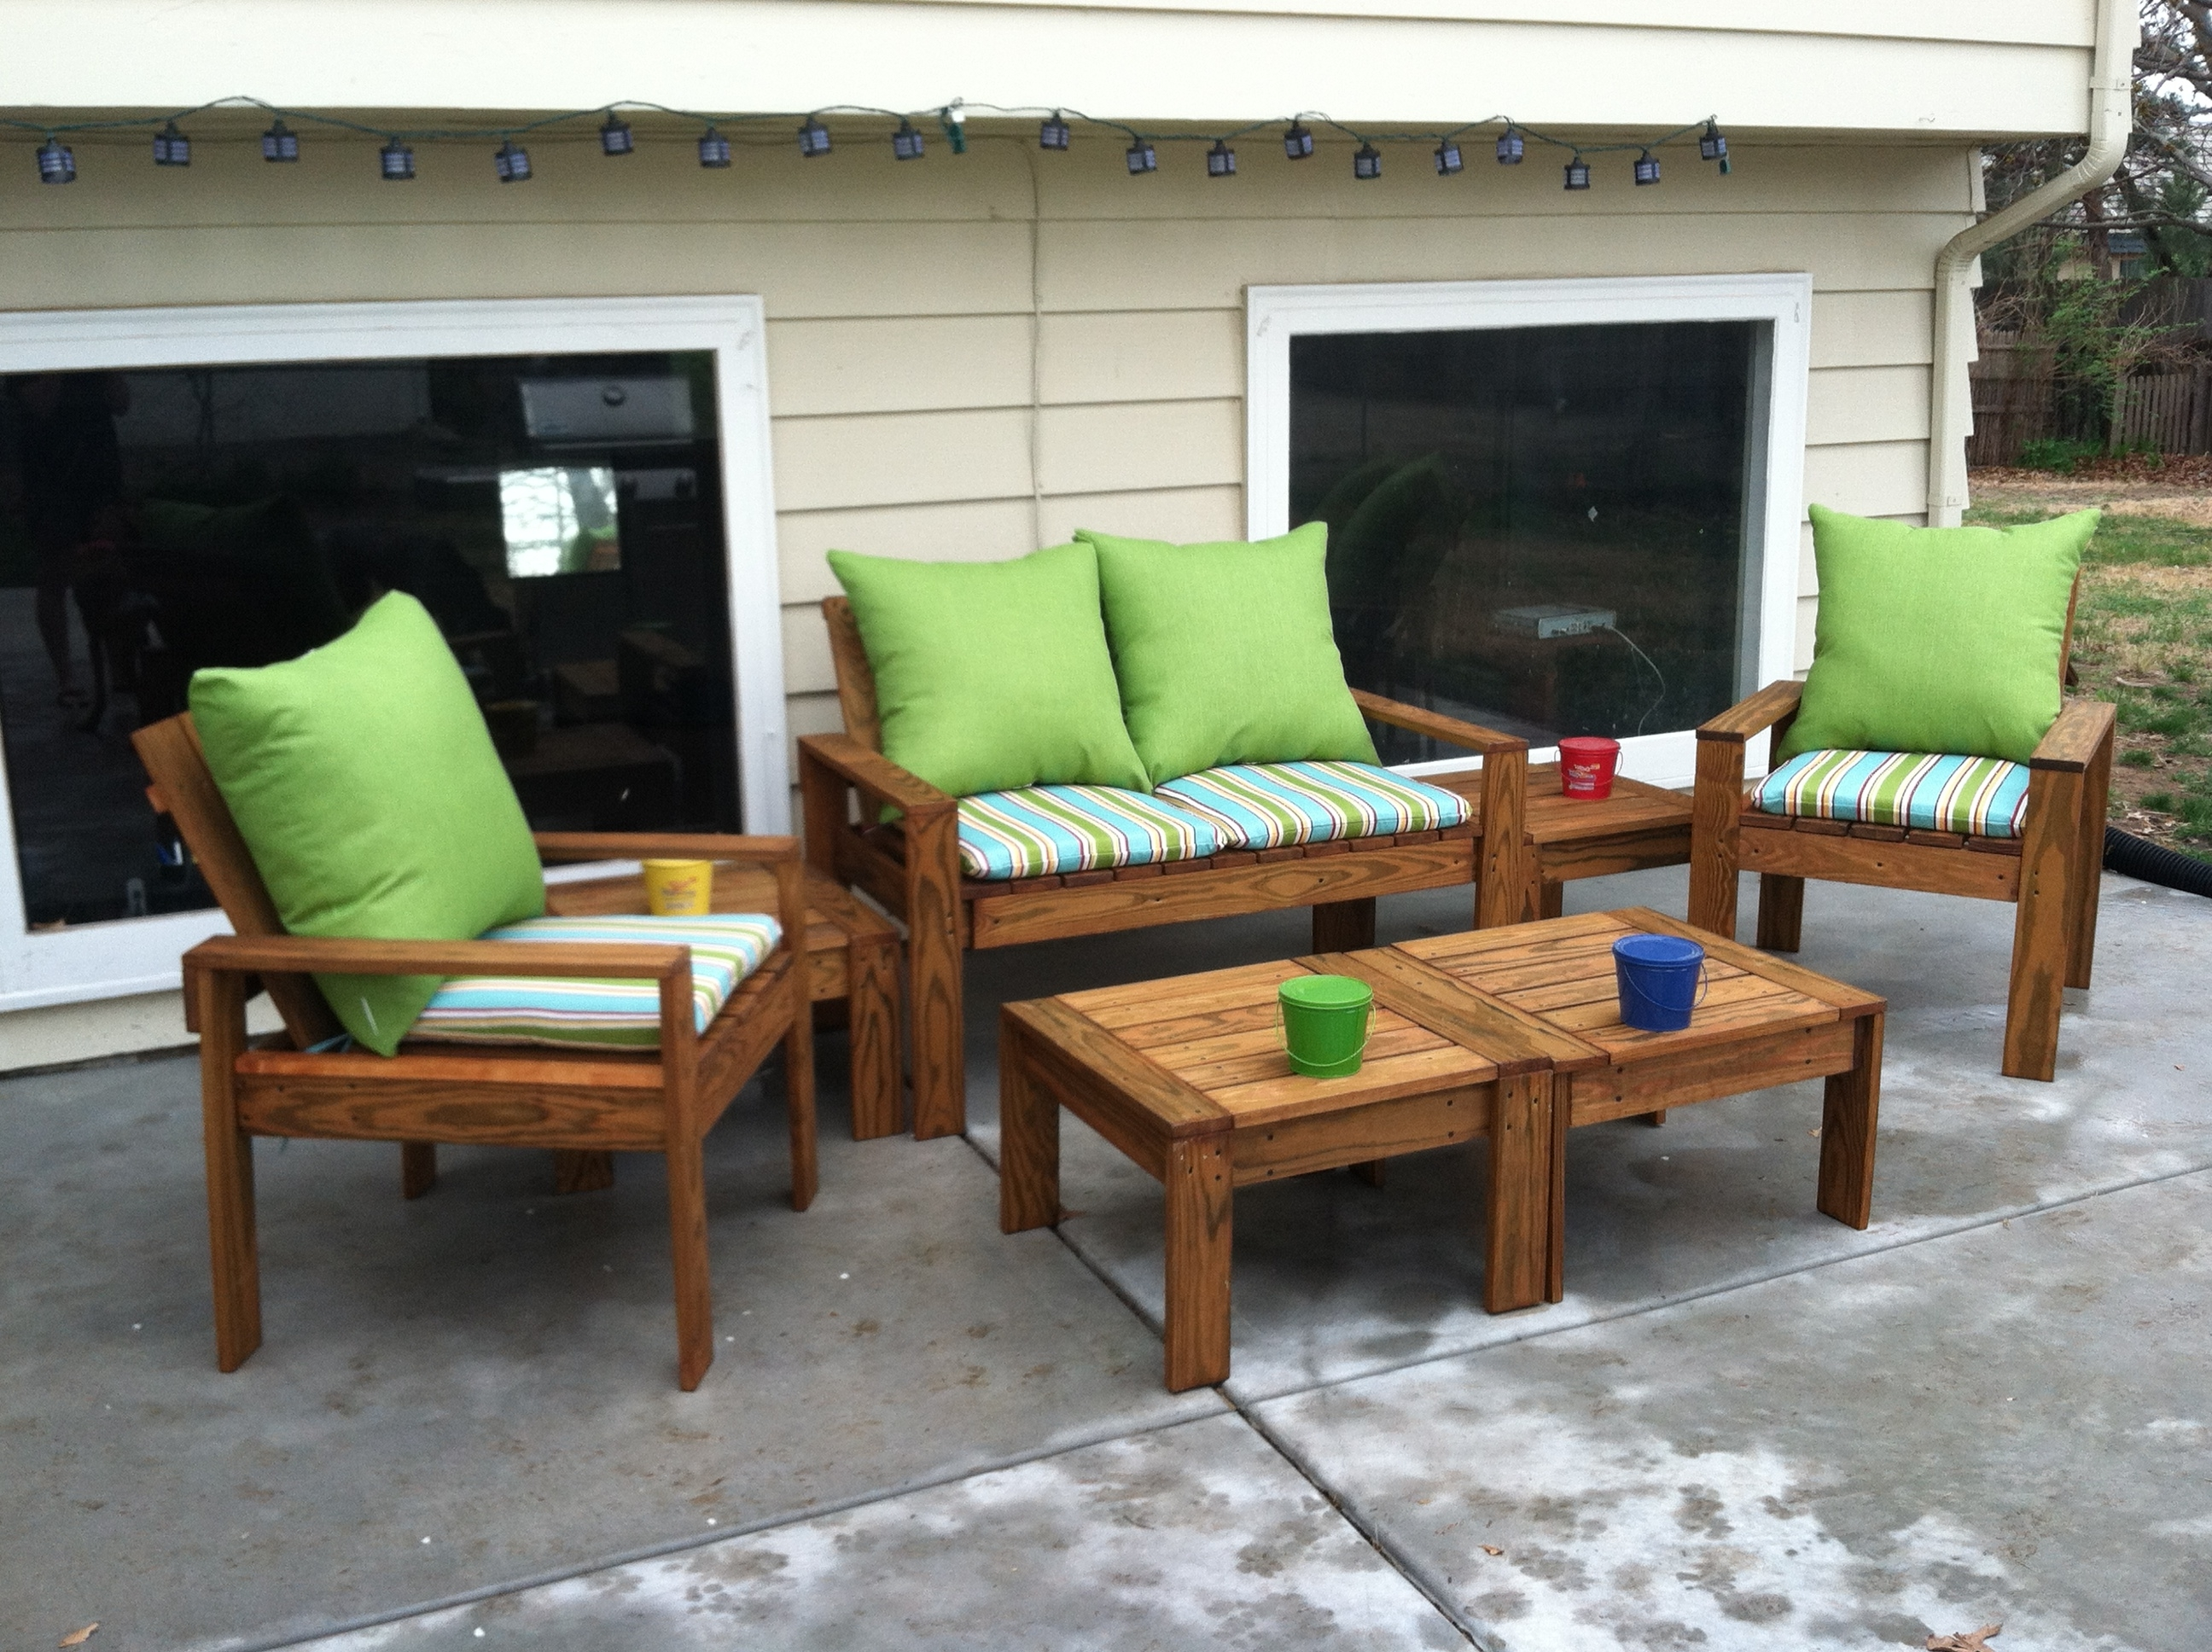 Simple Outdoor Conversation Set – Diy Projects With Fashionable Patio Conversation Sets (View 12 of 15)